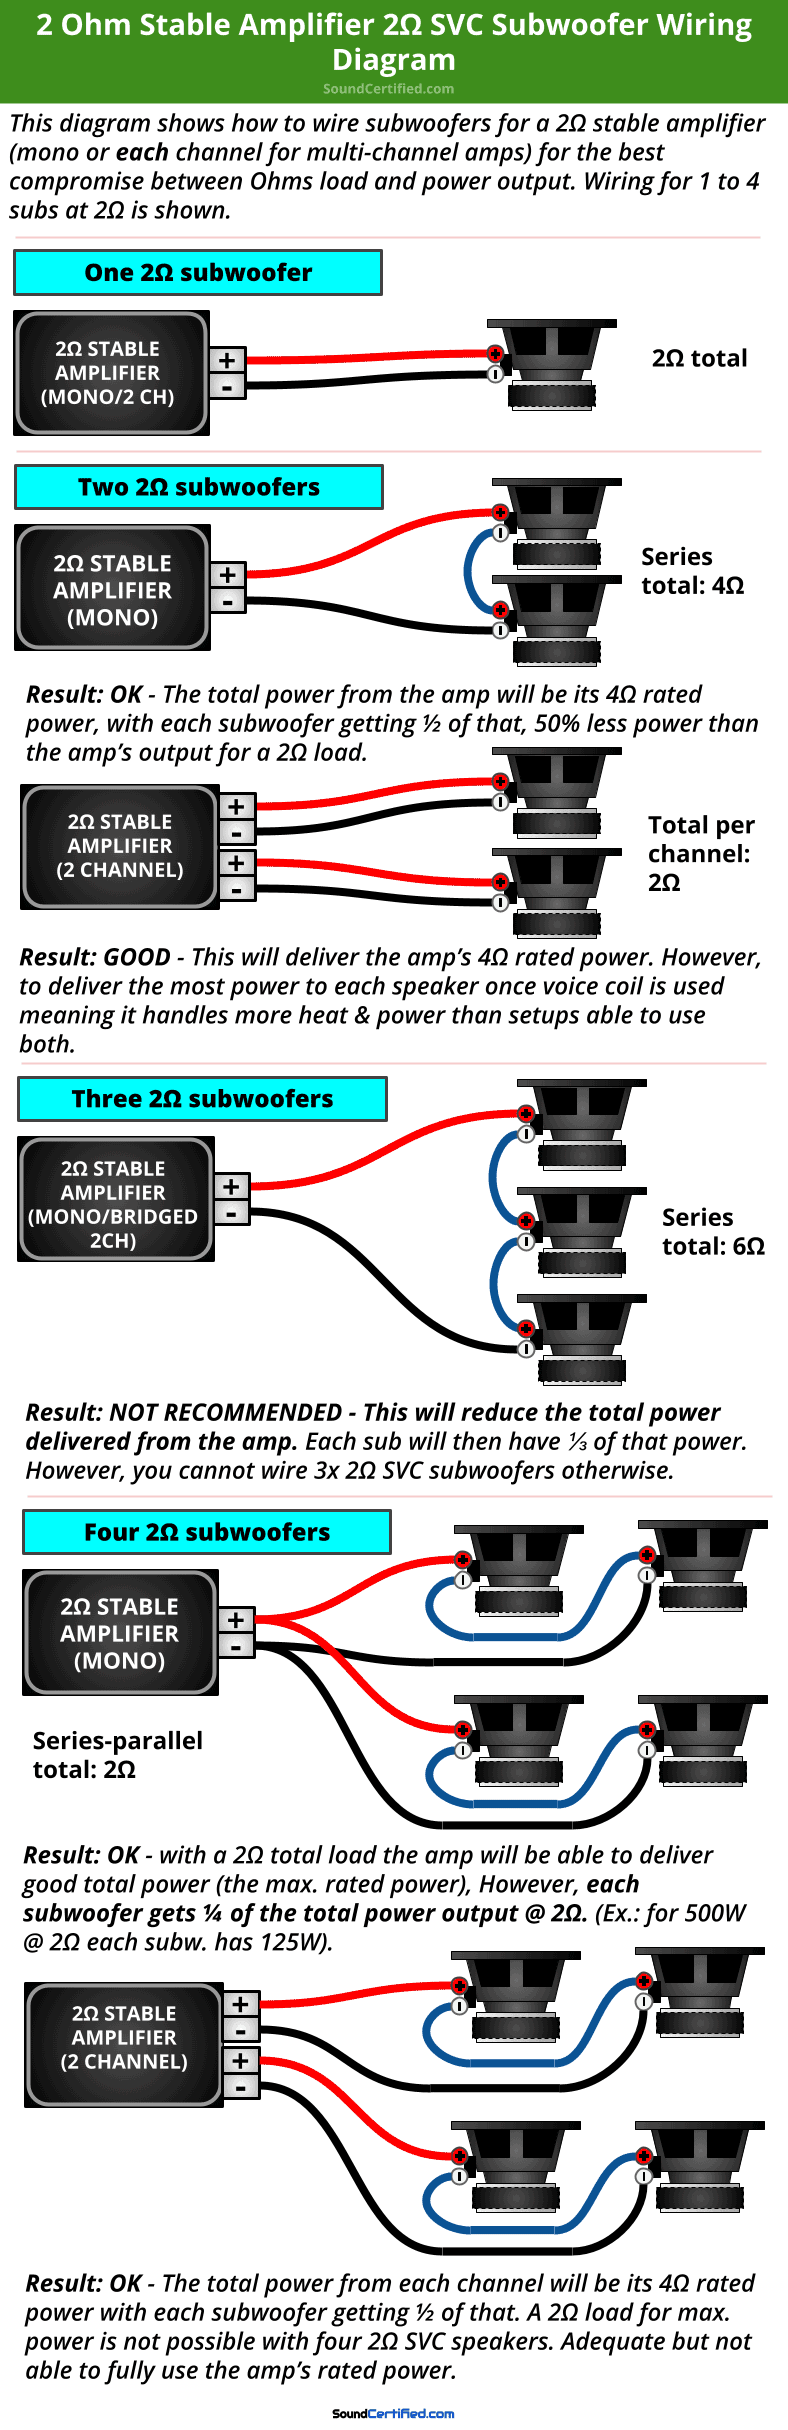 How to connect 2 amplifiers together